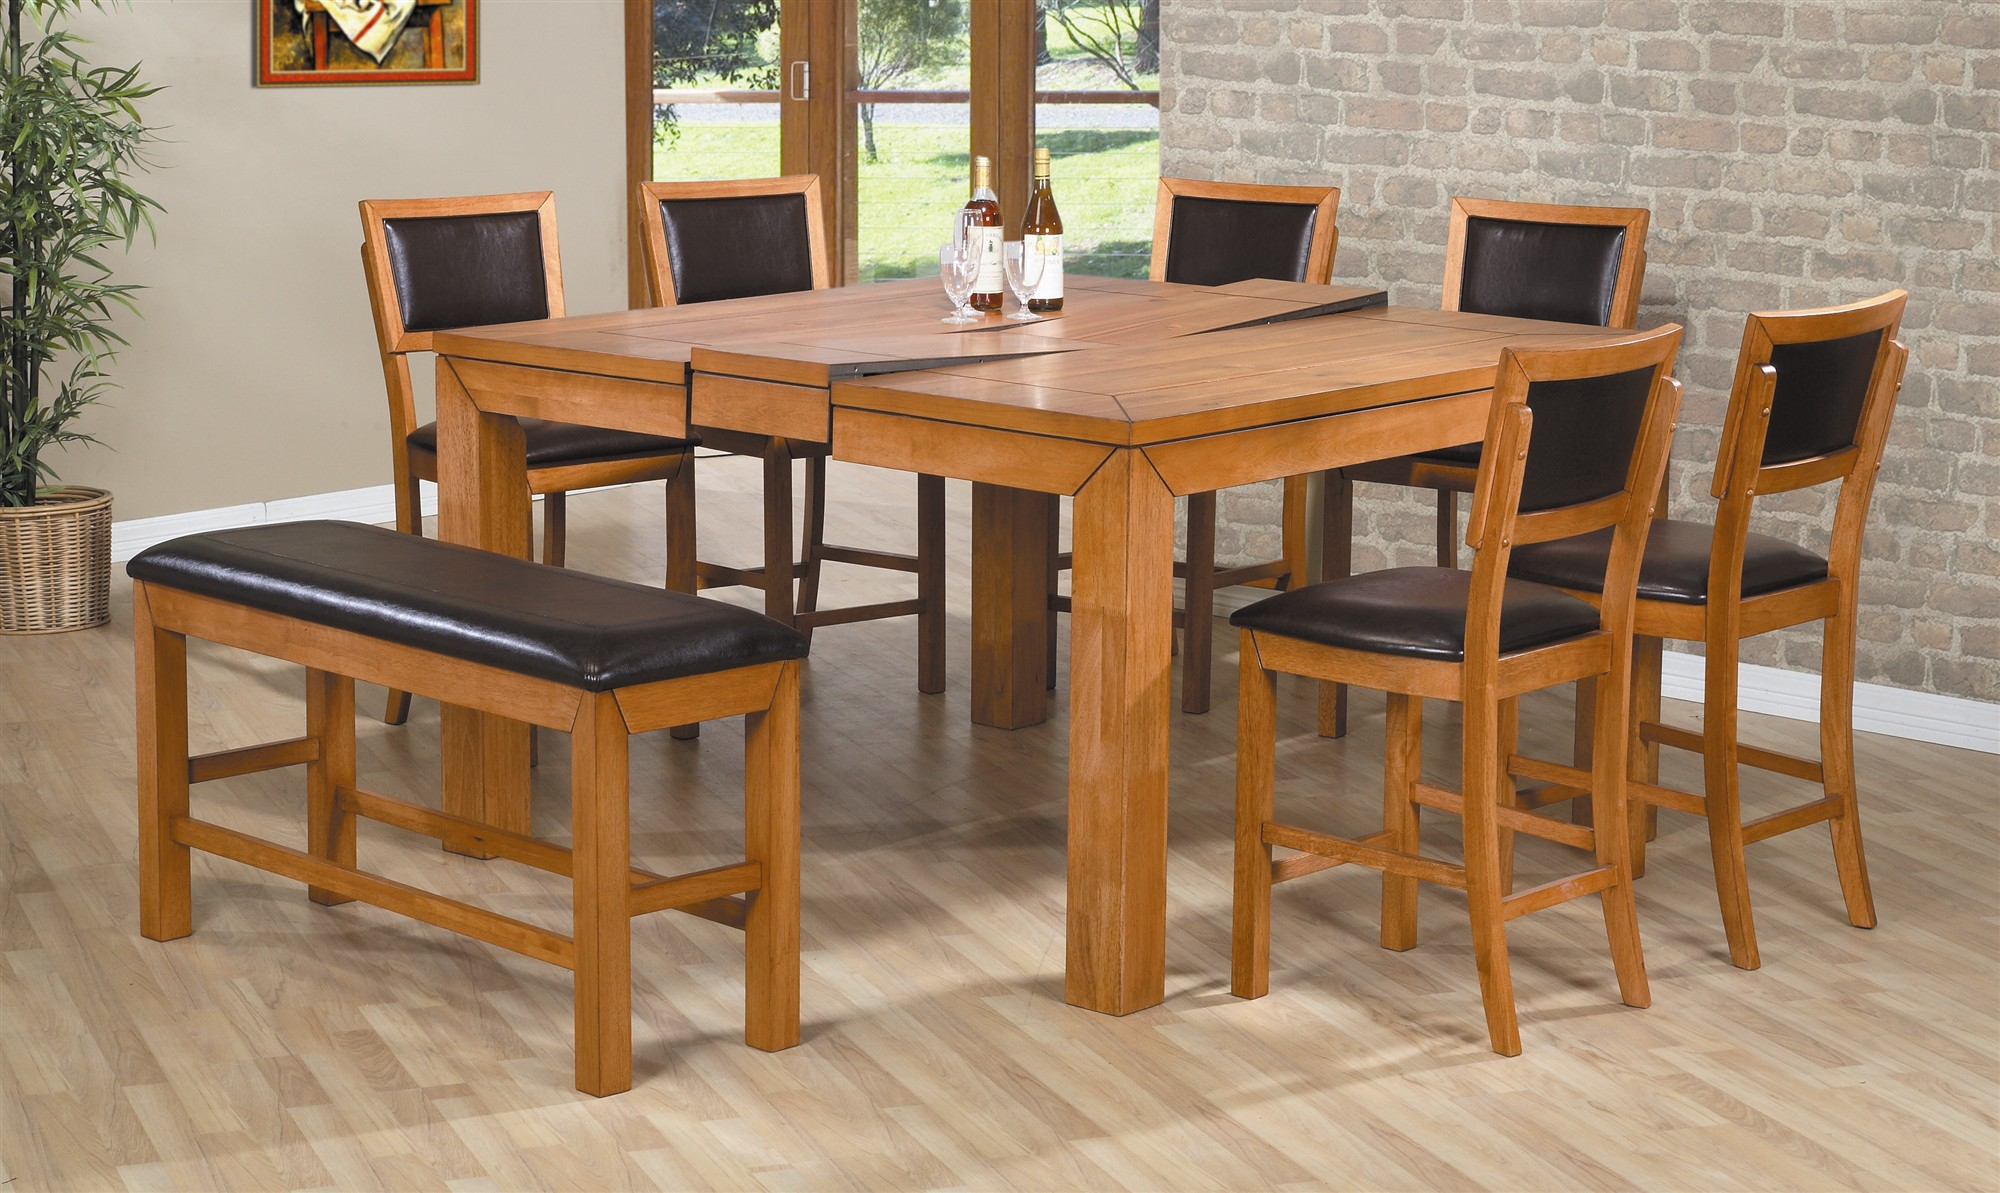 Dining room table seats 12 for big family homesfeed for Pictures of dining room tables